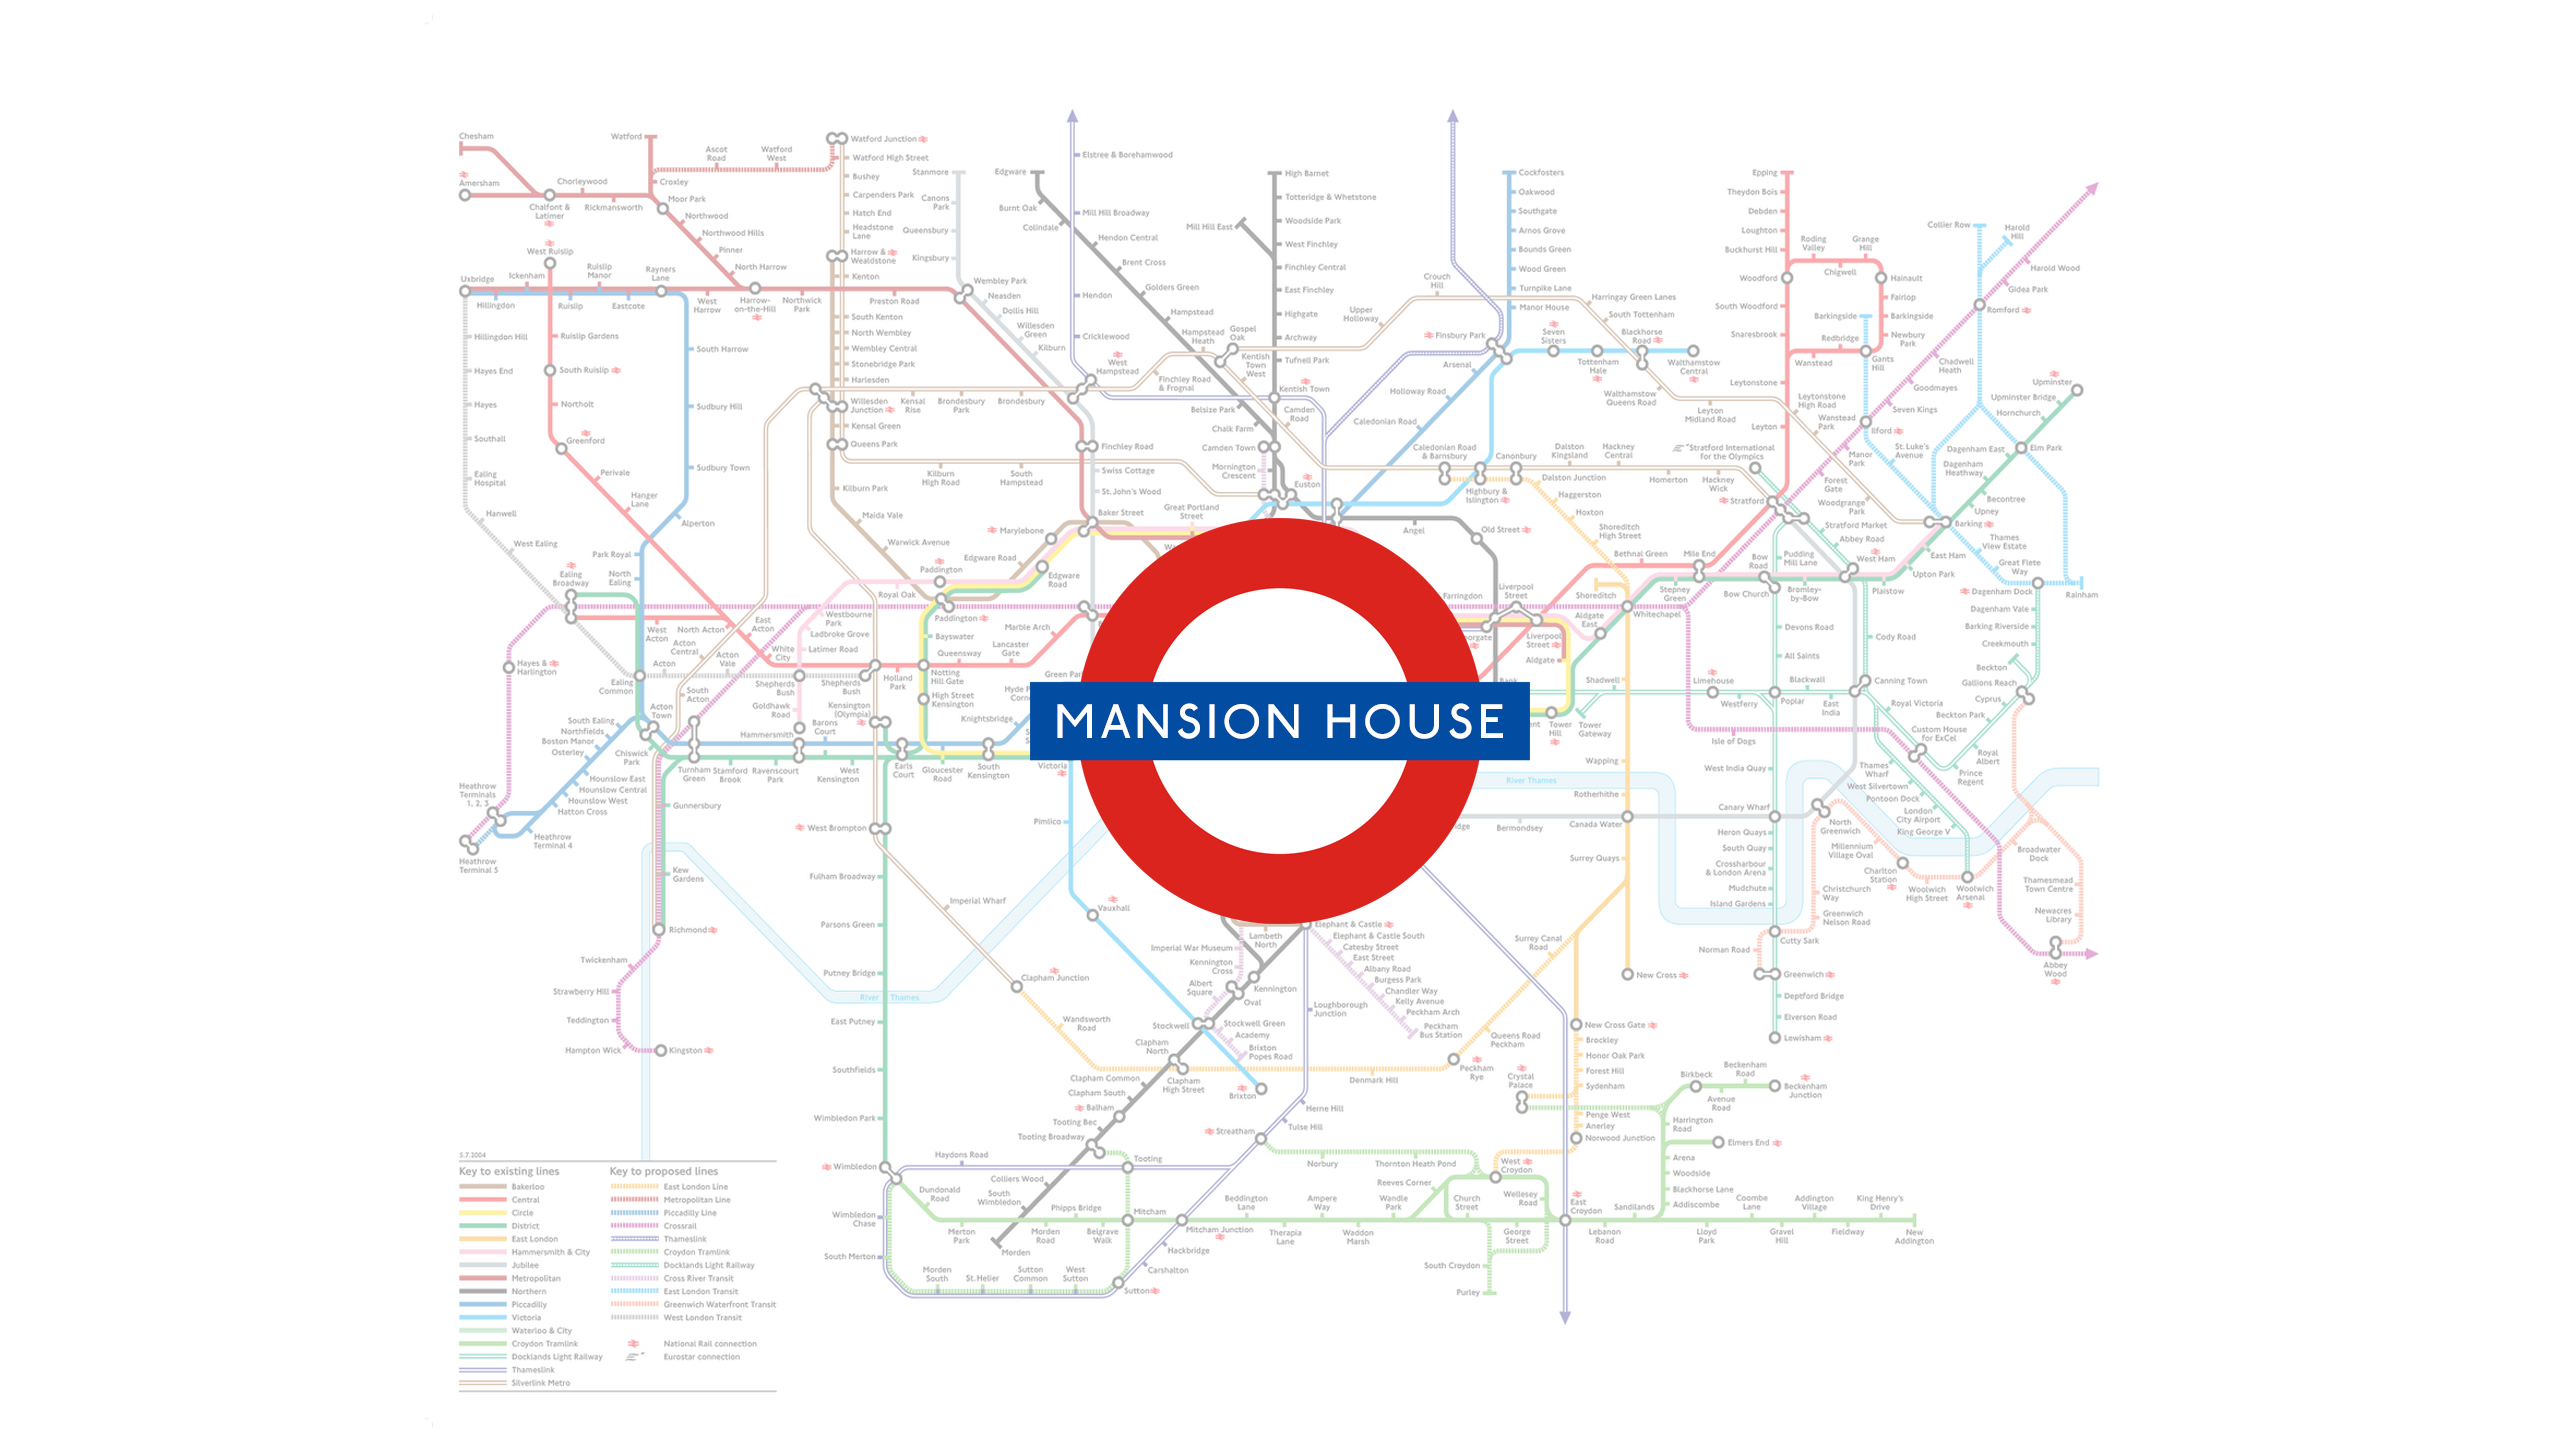 Mansion House (Map)